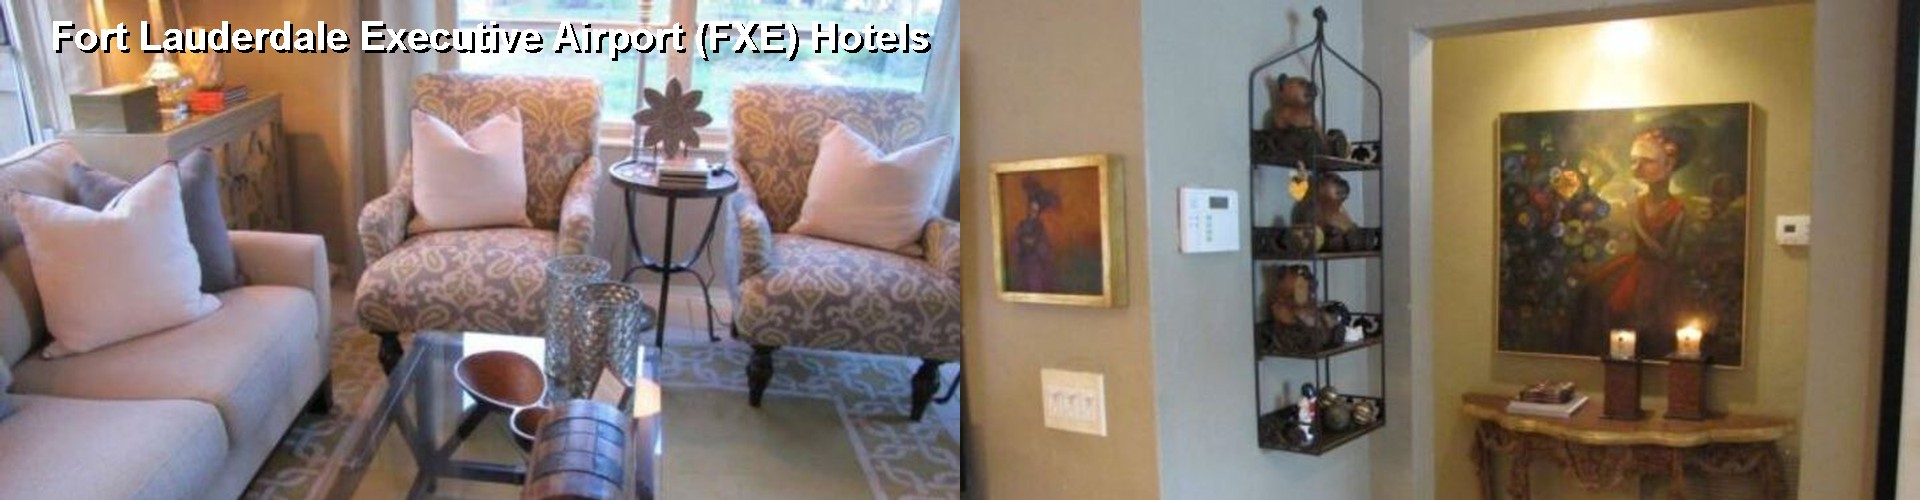 5 Best Hotels near Fort Lauderdale Executive Airport (FXE)